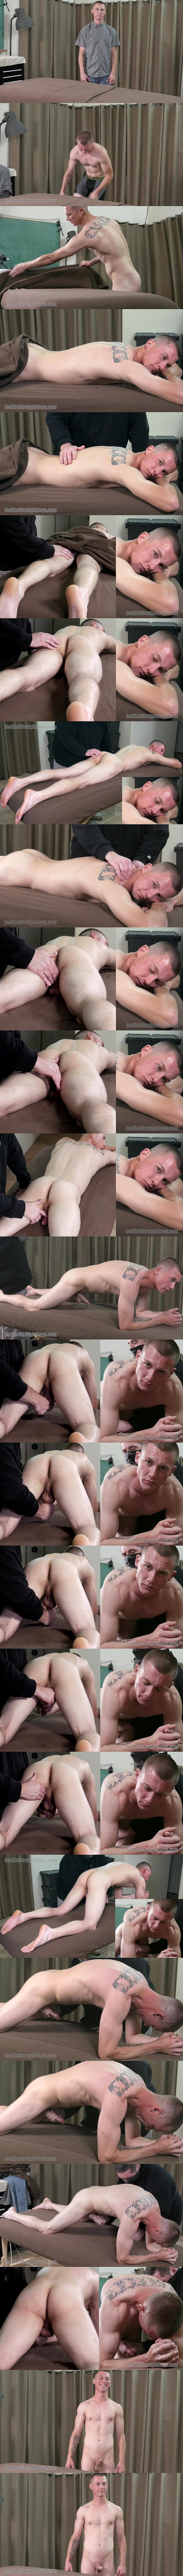 Redhotstraightboys - Tom massages straight jock Fletch Chase's body and fondles Fletch's dick and balls before he jerks Fletch off in Fletch's First Gay Experience 02